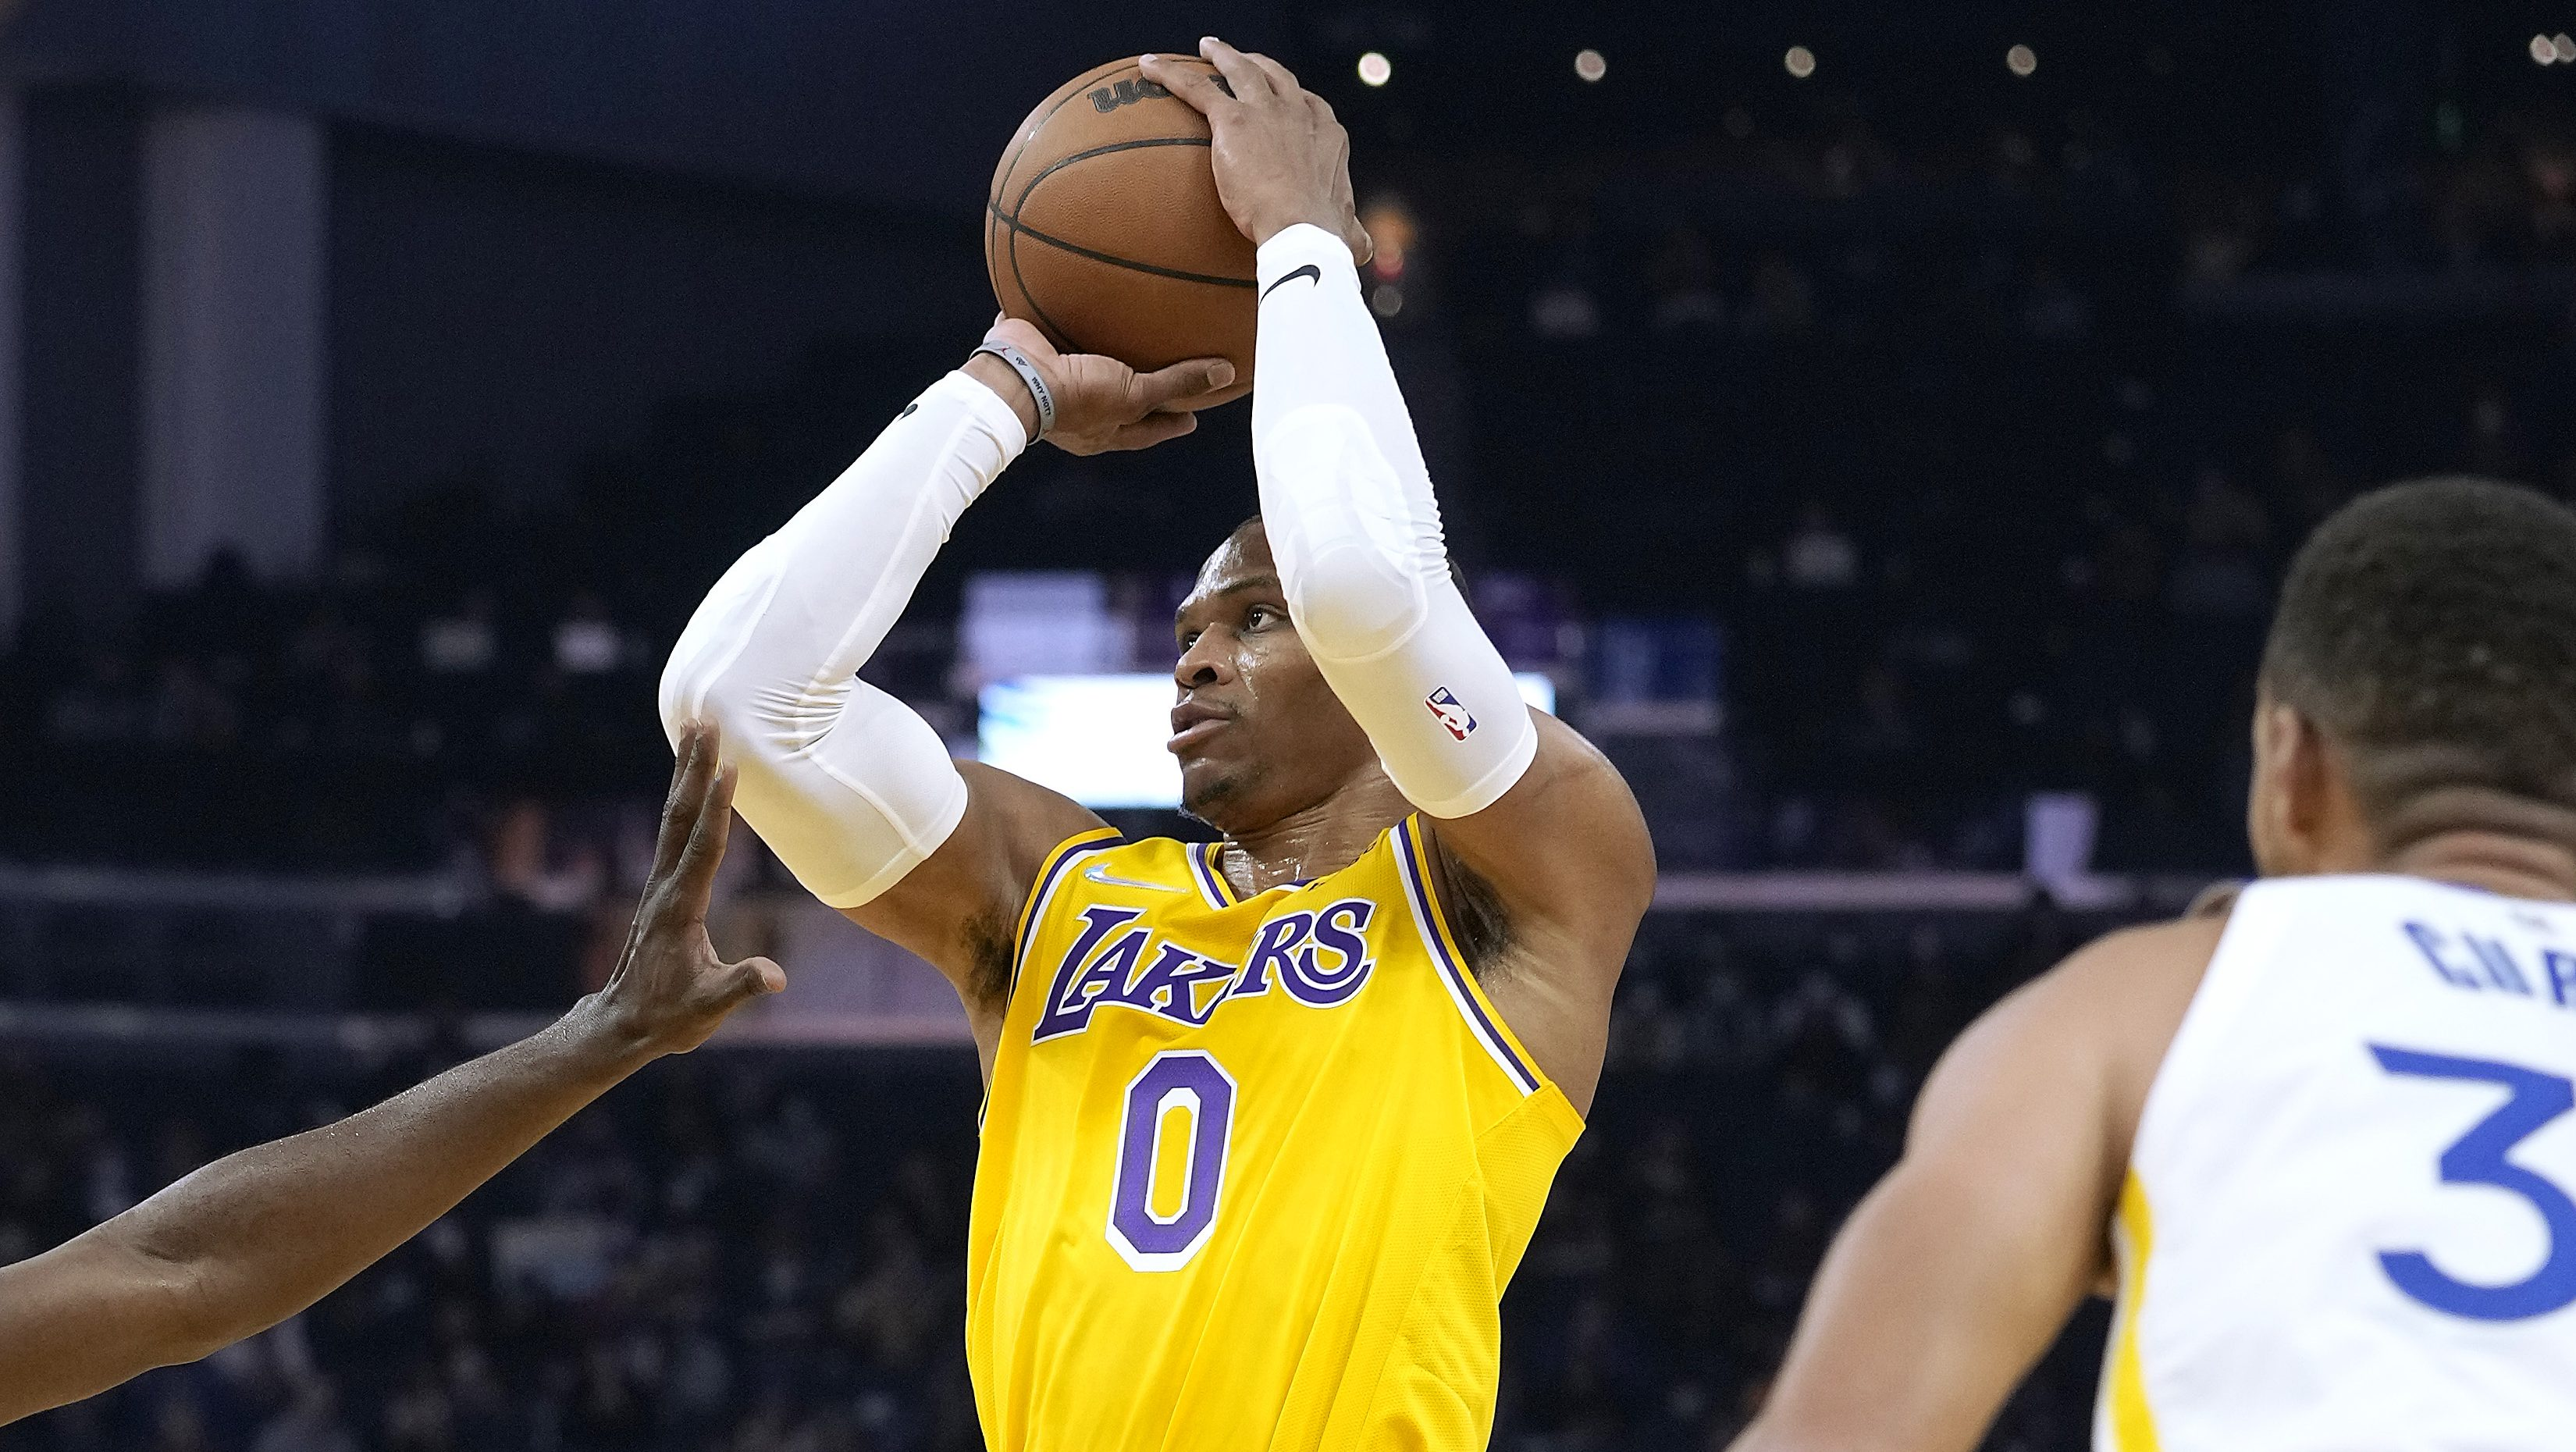 Westbrook Emphatically Defends 0-6 Lakers: 'That Answers Your Question'